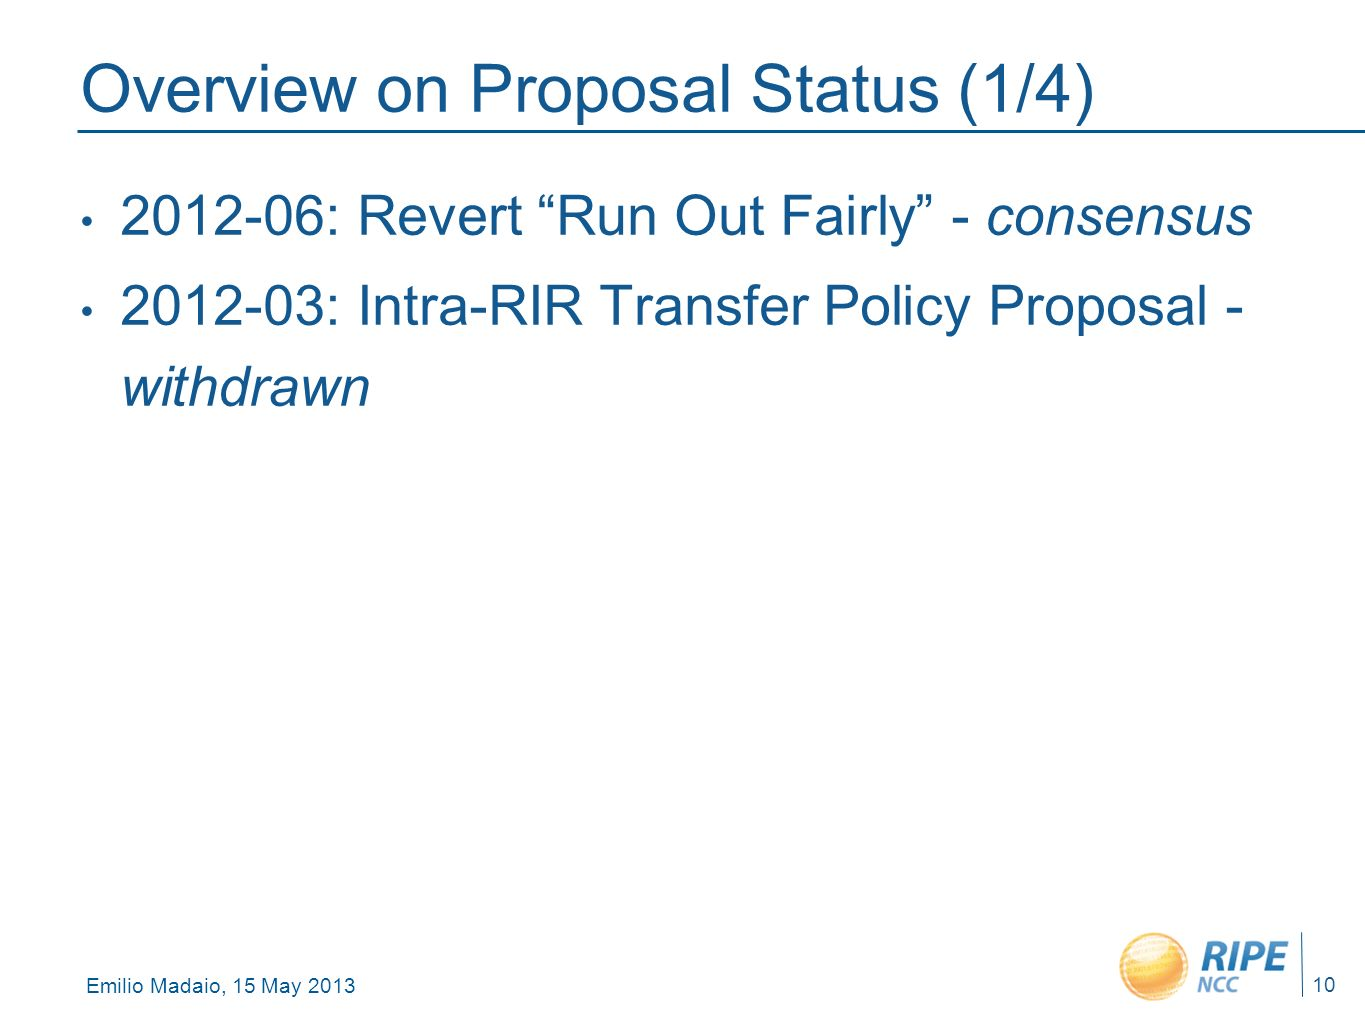 Emilio Madaio, 15 May 2013 10 Overview on Proposal Status (1/4) 2012-06: Revert Run Out Fairly - consensus 2012-03: Intra-RIR Transfer Policy Proposal - withdrawn